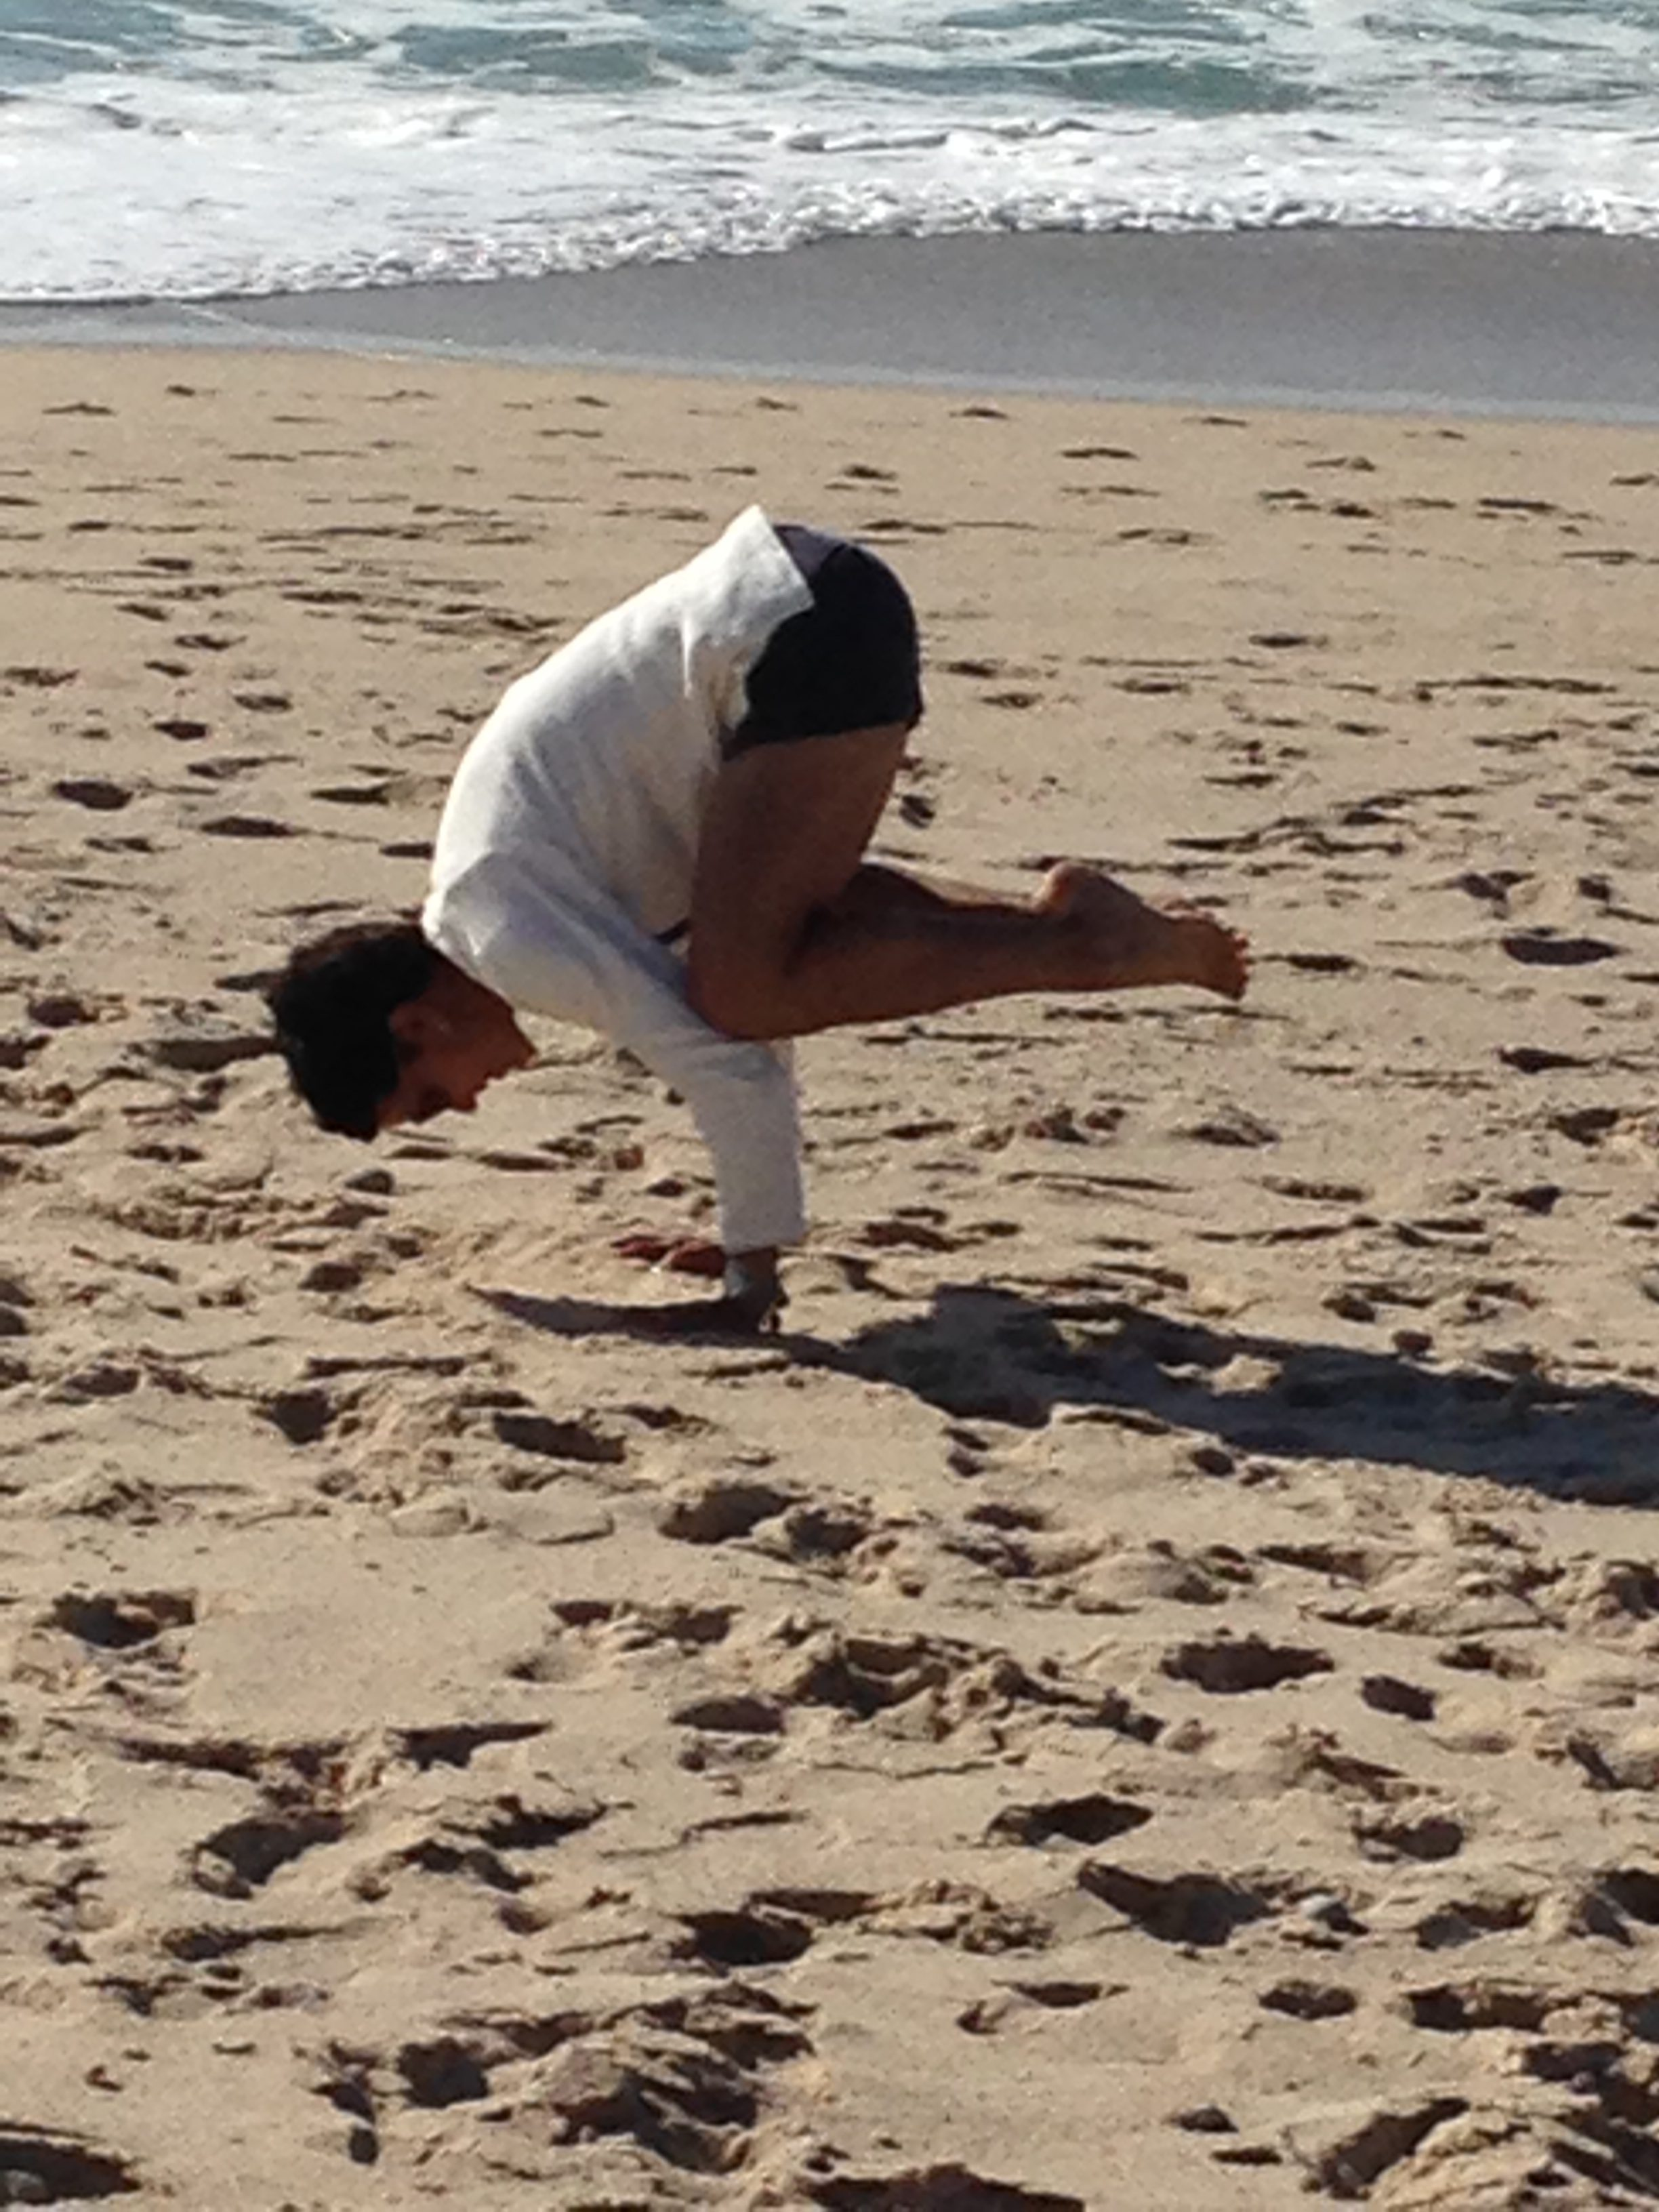 A rare photo of me doing yoga. This is crow pose on the beach in Portugal after my duathlon in Spain in 2014.